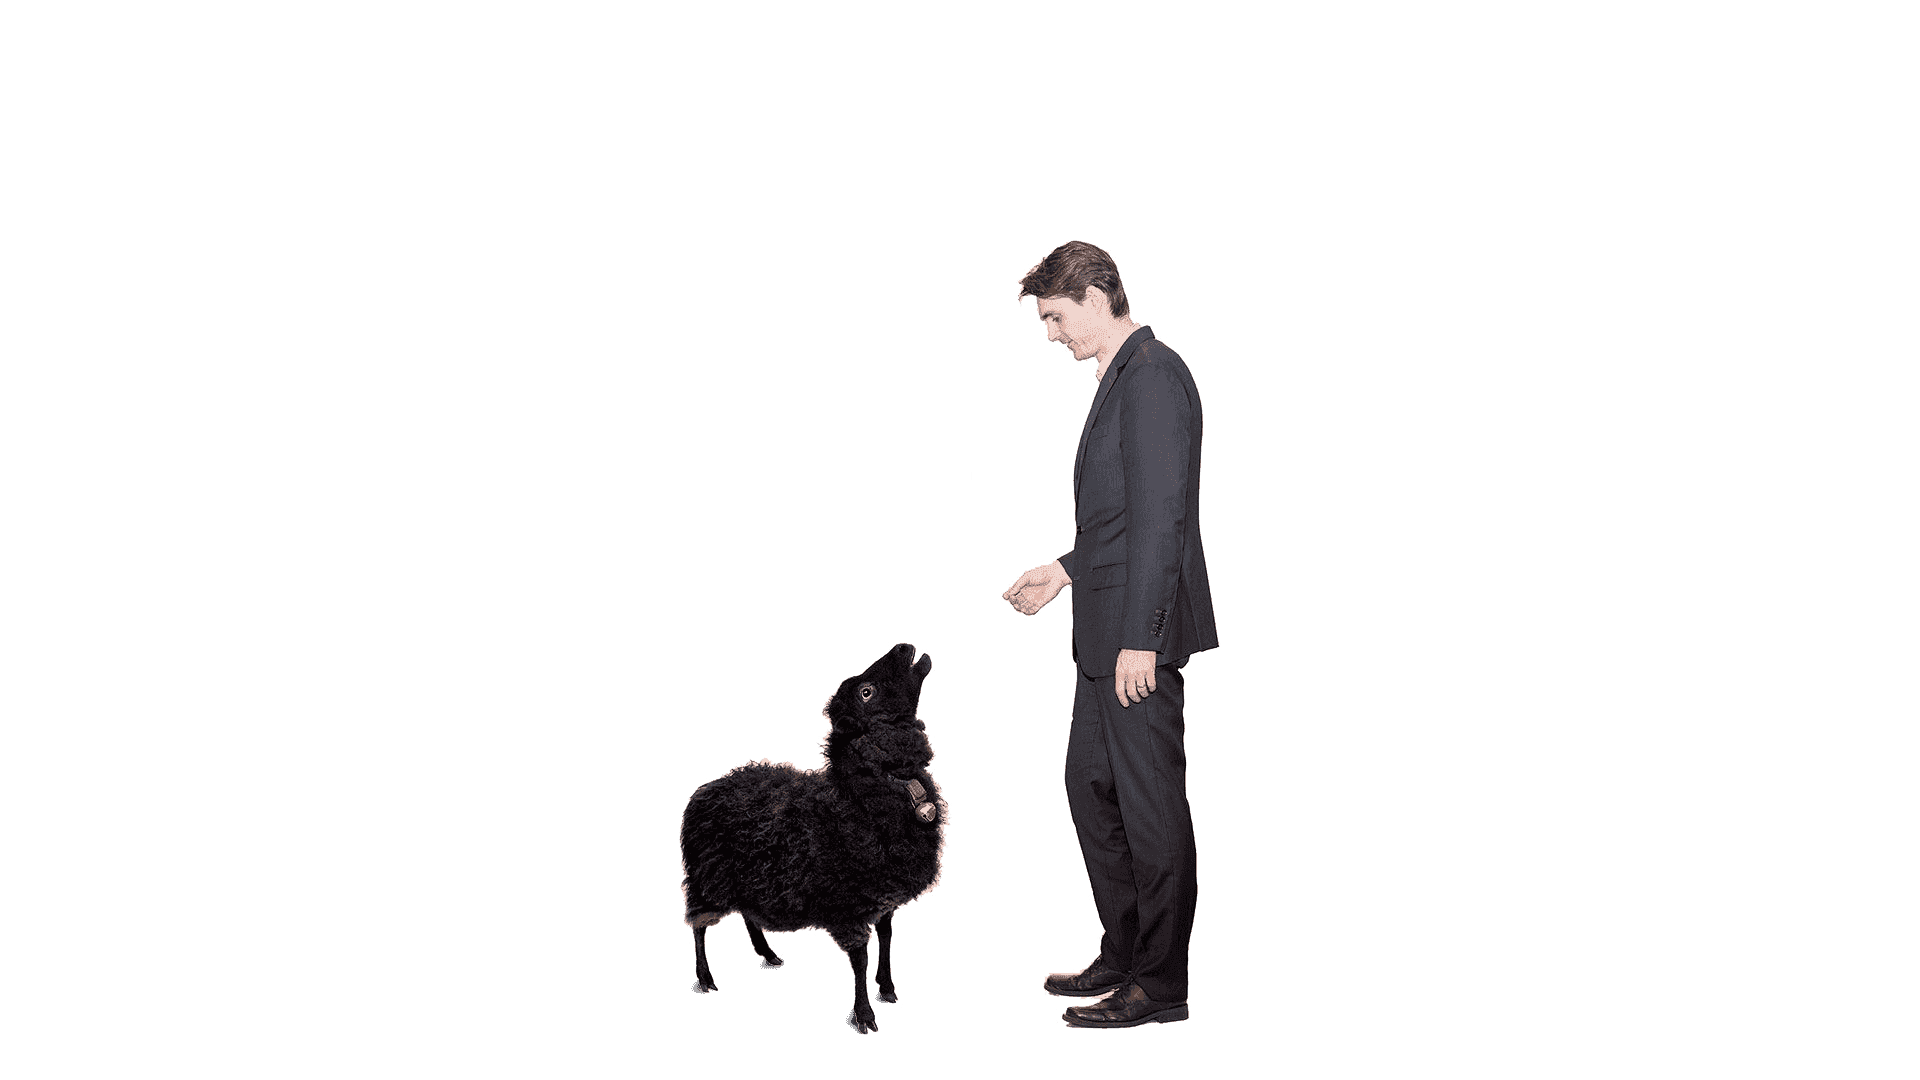 Kamloops lawyer Courtney Aubuchon talking to a black sheep about being disenherited